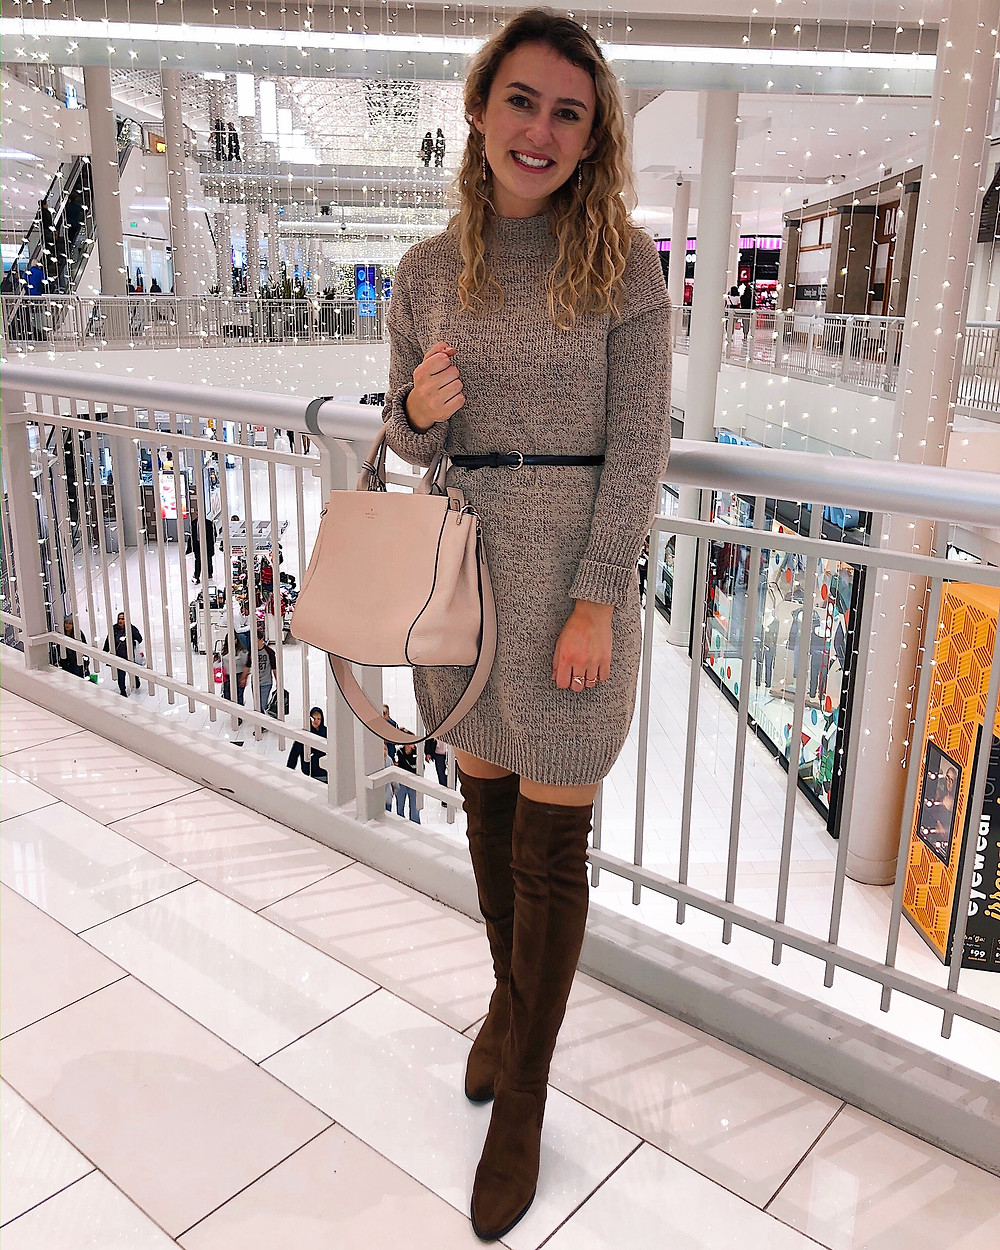 Abby Graf, the Bleached Curl, over the knee boots, otk boots, outfit inspiration, winter outfit